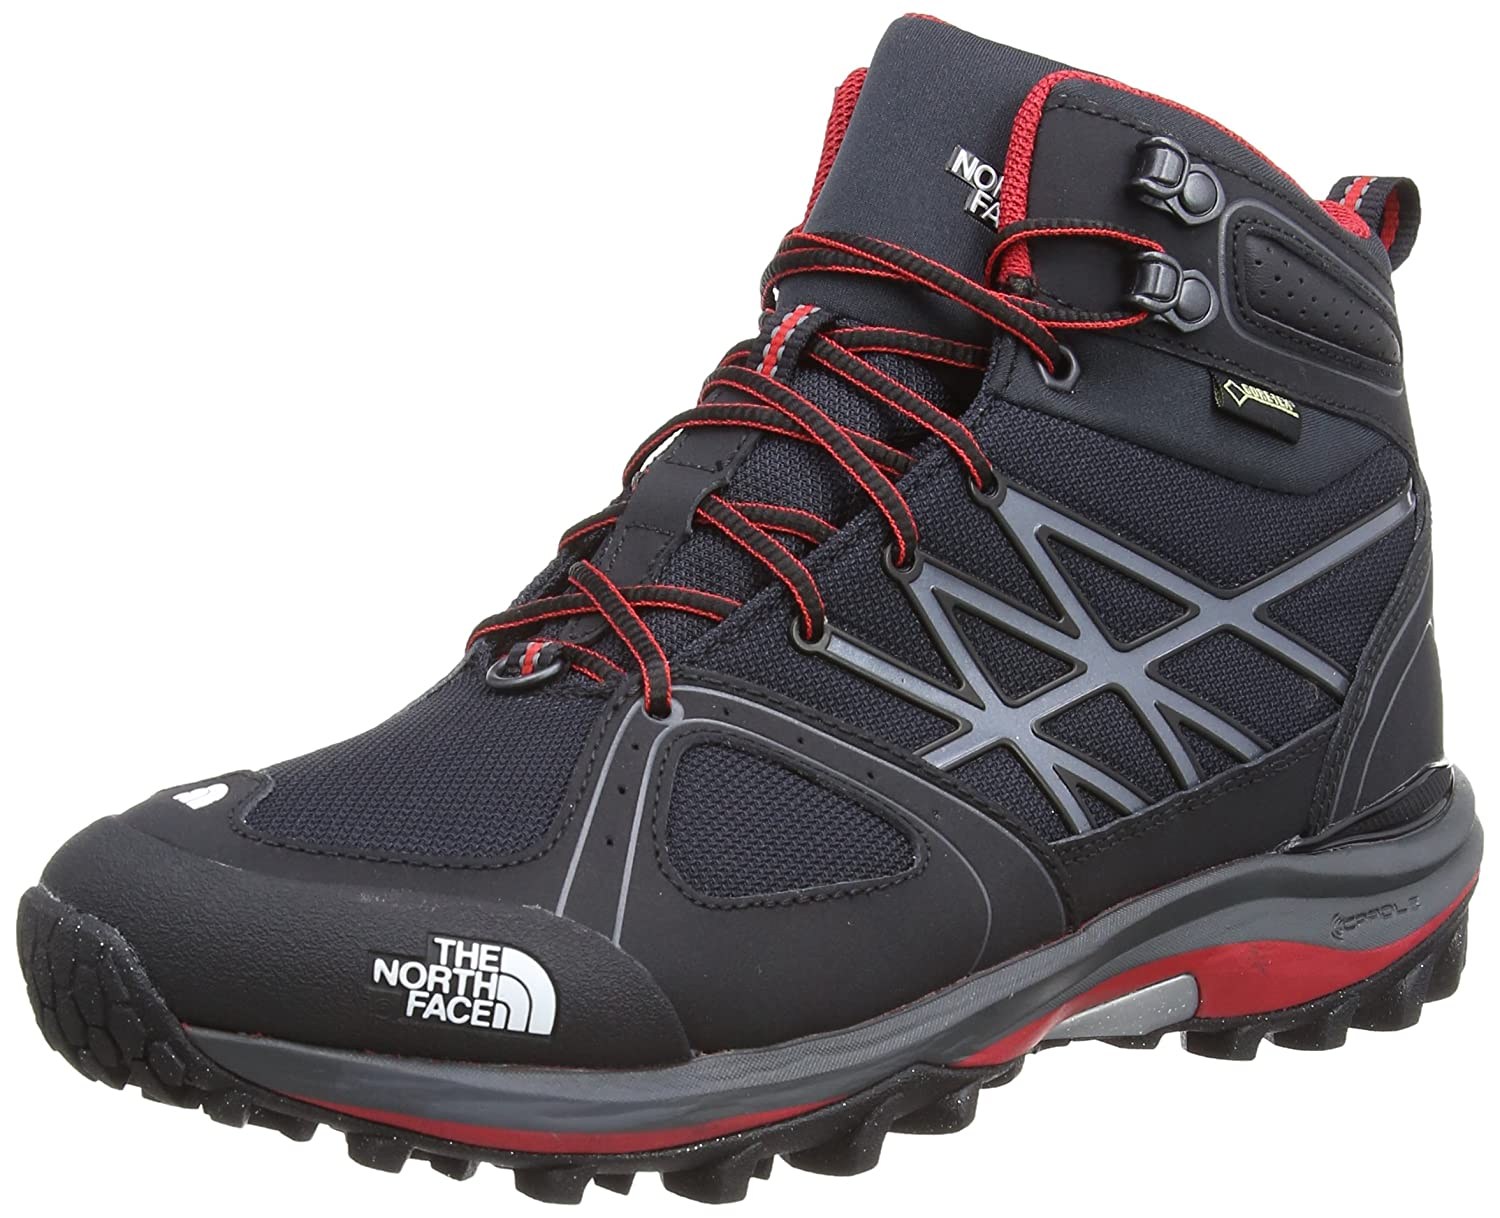 9da6ff4c8 THE NORTH FACE Unisex-Adult Ultra Extreme Trekking and Hiking Shoes